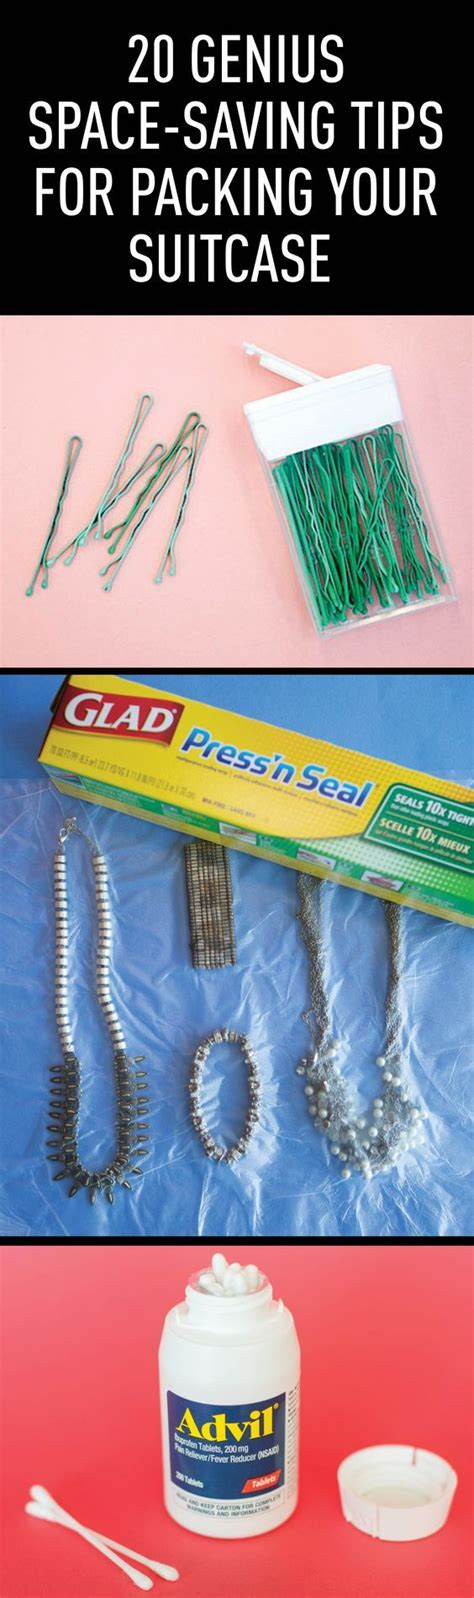 16 Genius Hacks Thatll Make Packing Your Suitcase So Easy